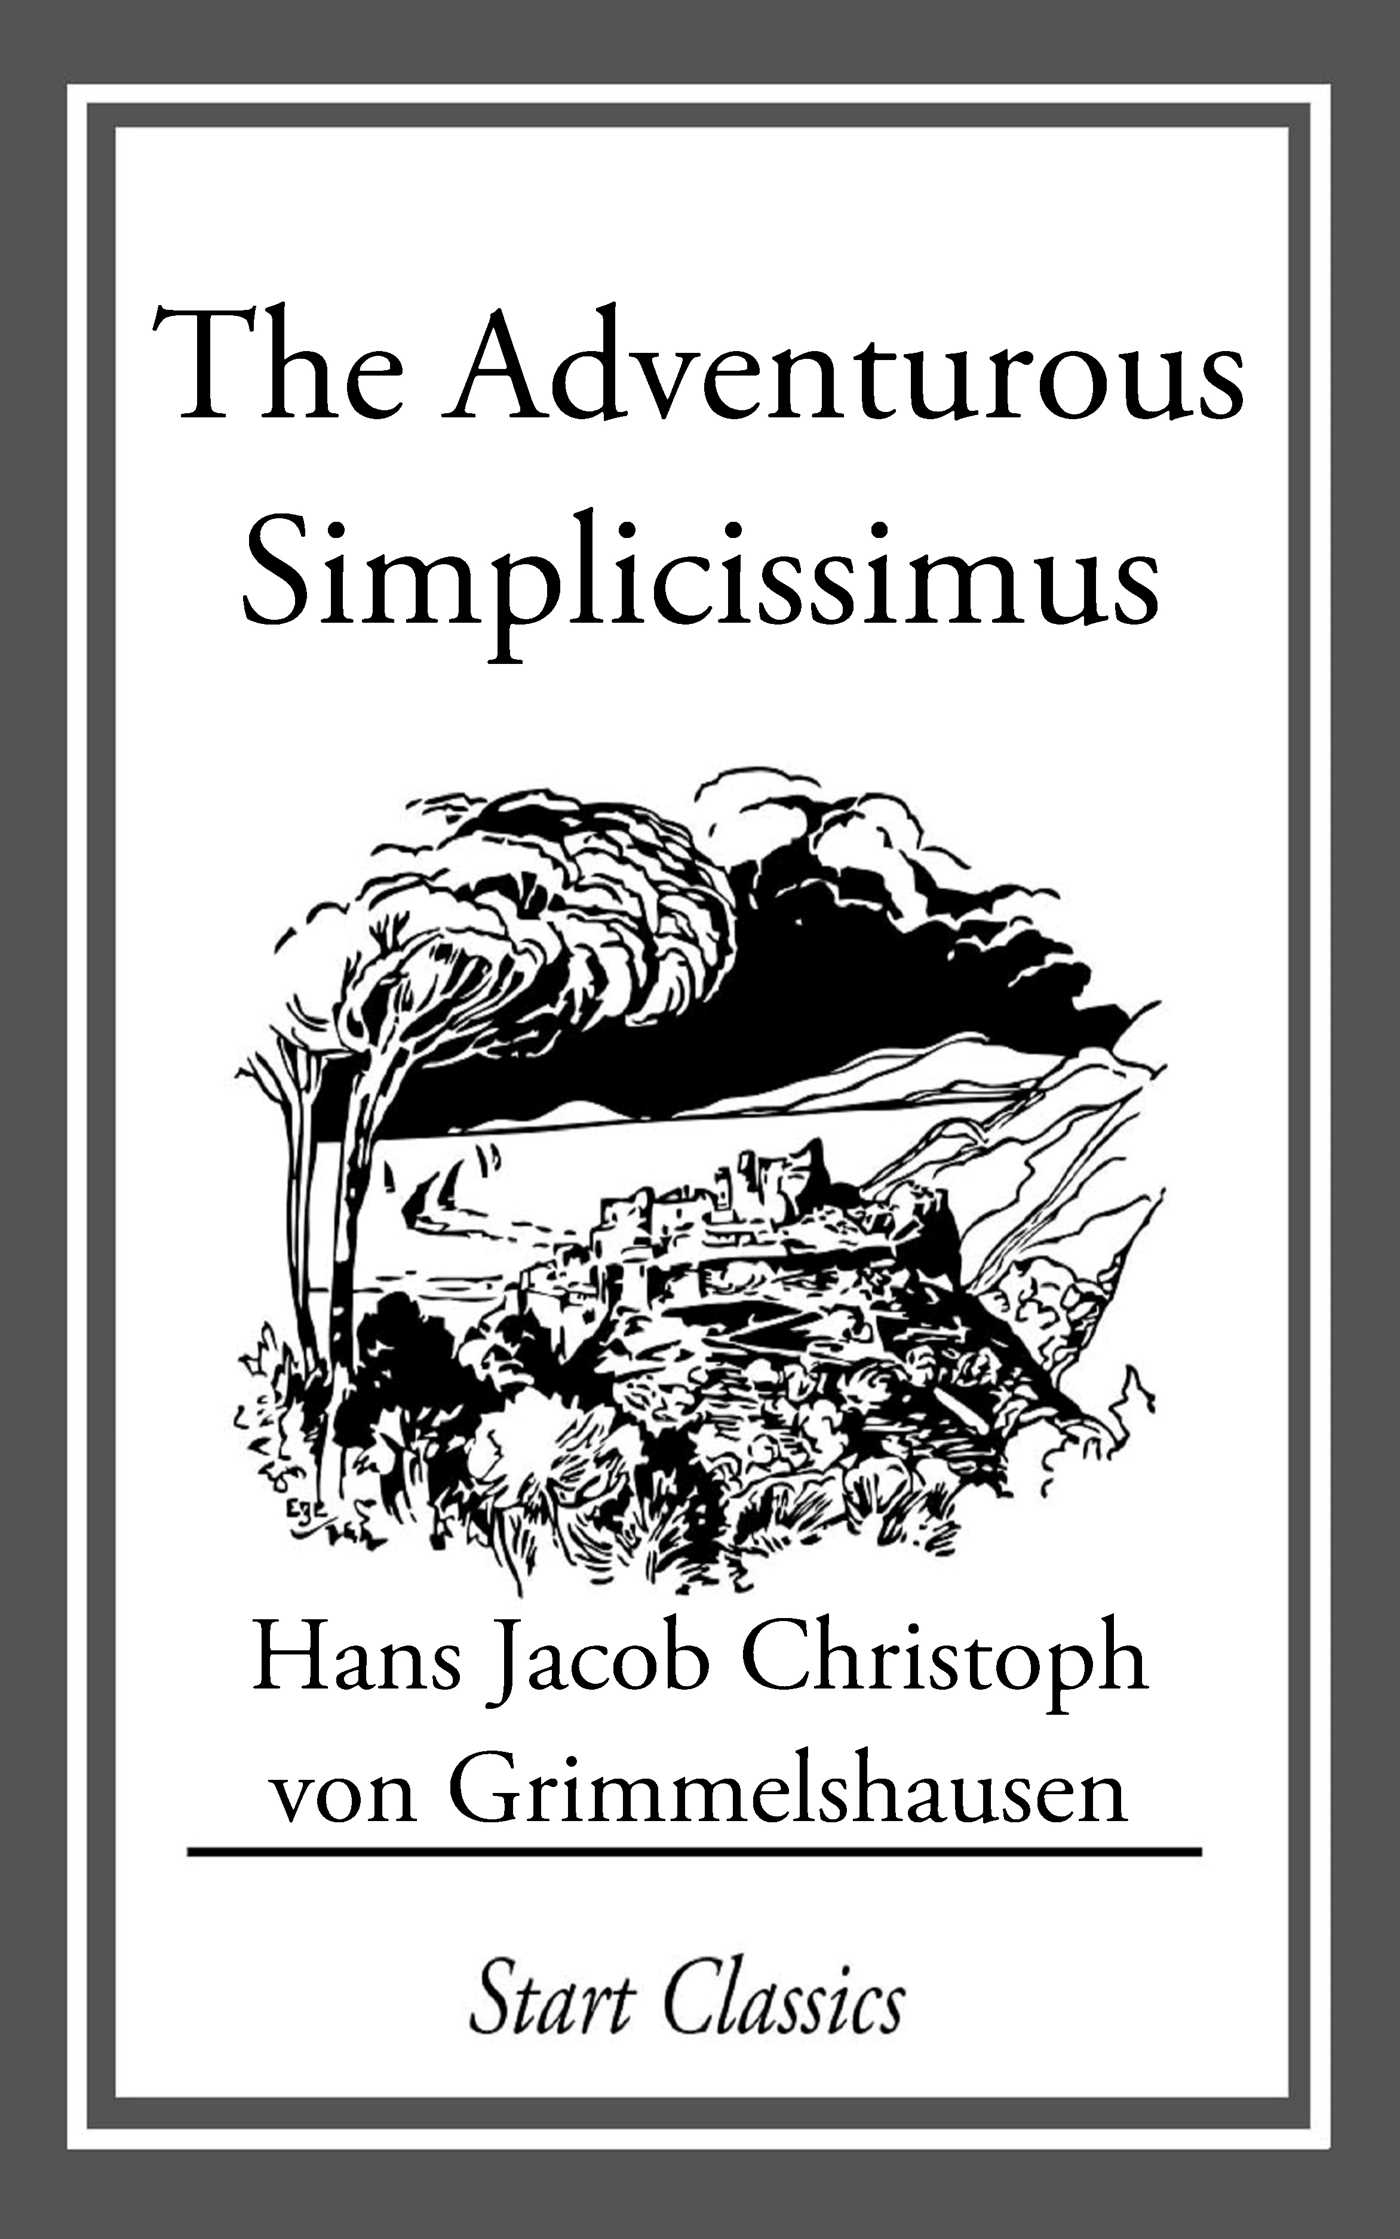 a review of the adventures of a simpleton a novel by grimmelshausen Hans jakob christoffel von grimmelshausen, author of the adventures of a simpleton, on librarything librarything is a cataloging and social networking site.